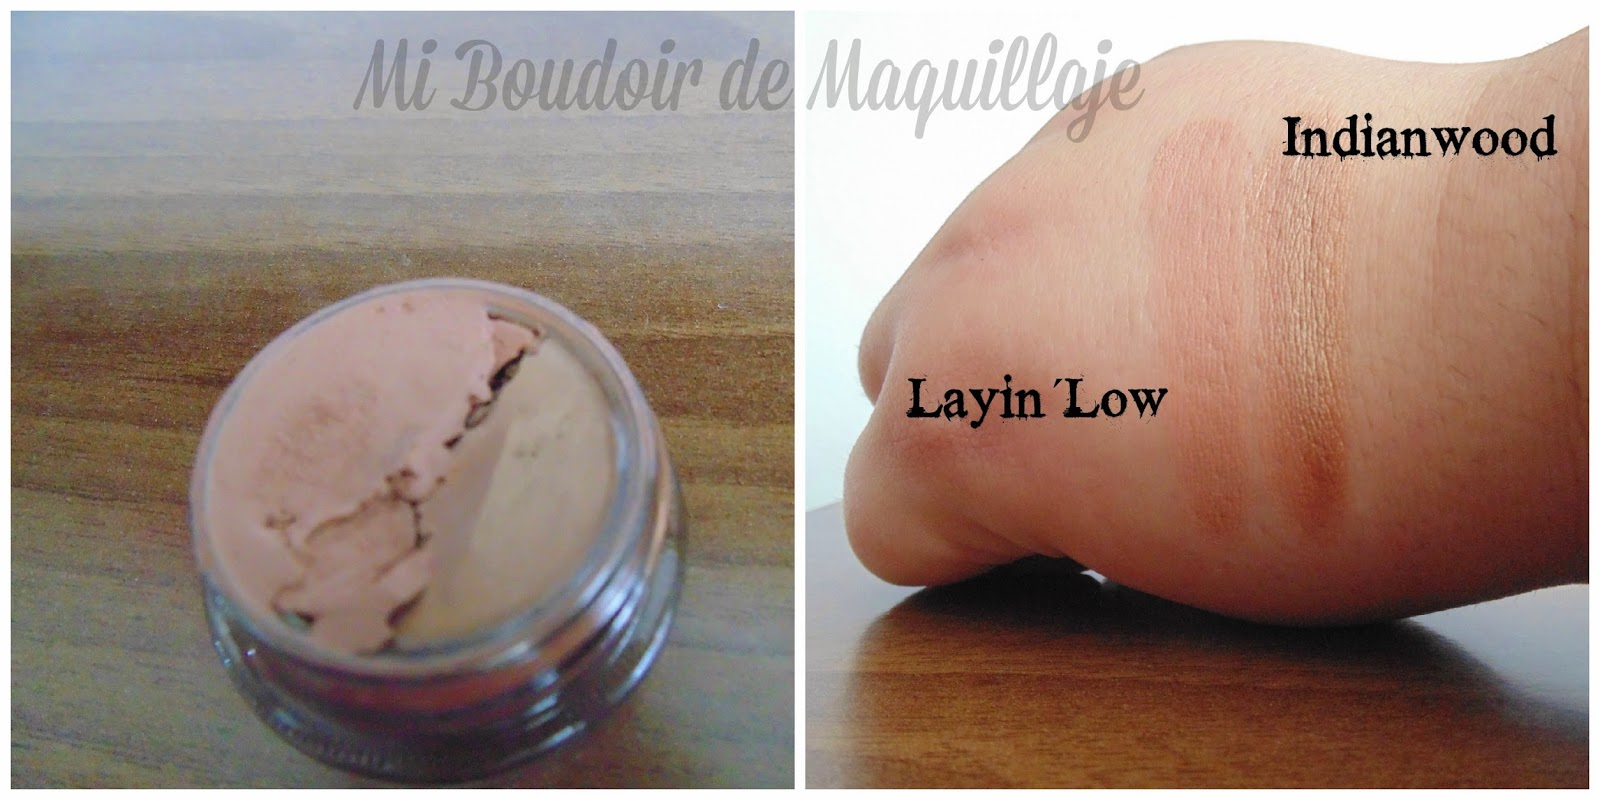 Indianwood y Layin´ low Mac paintpot